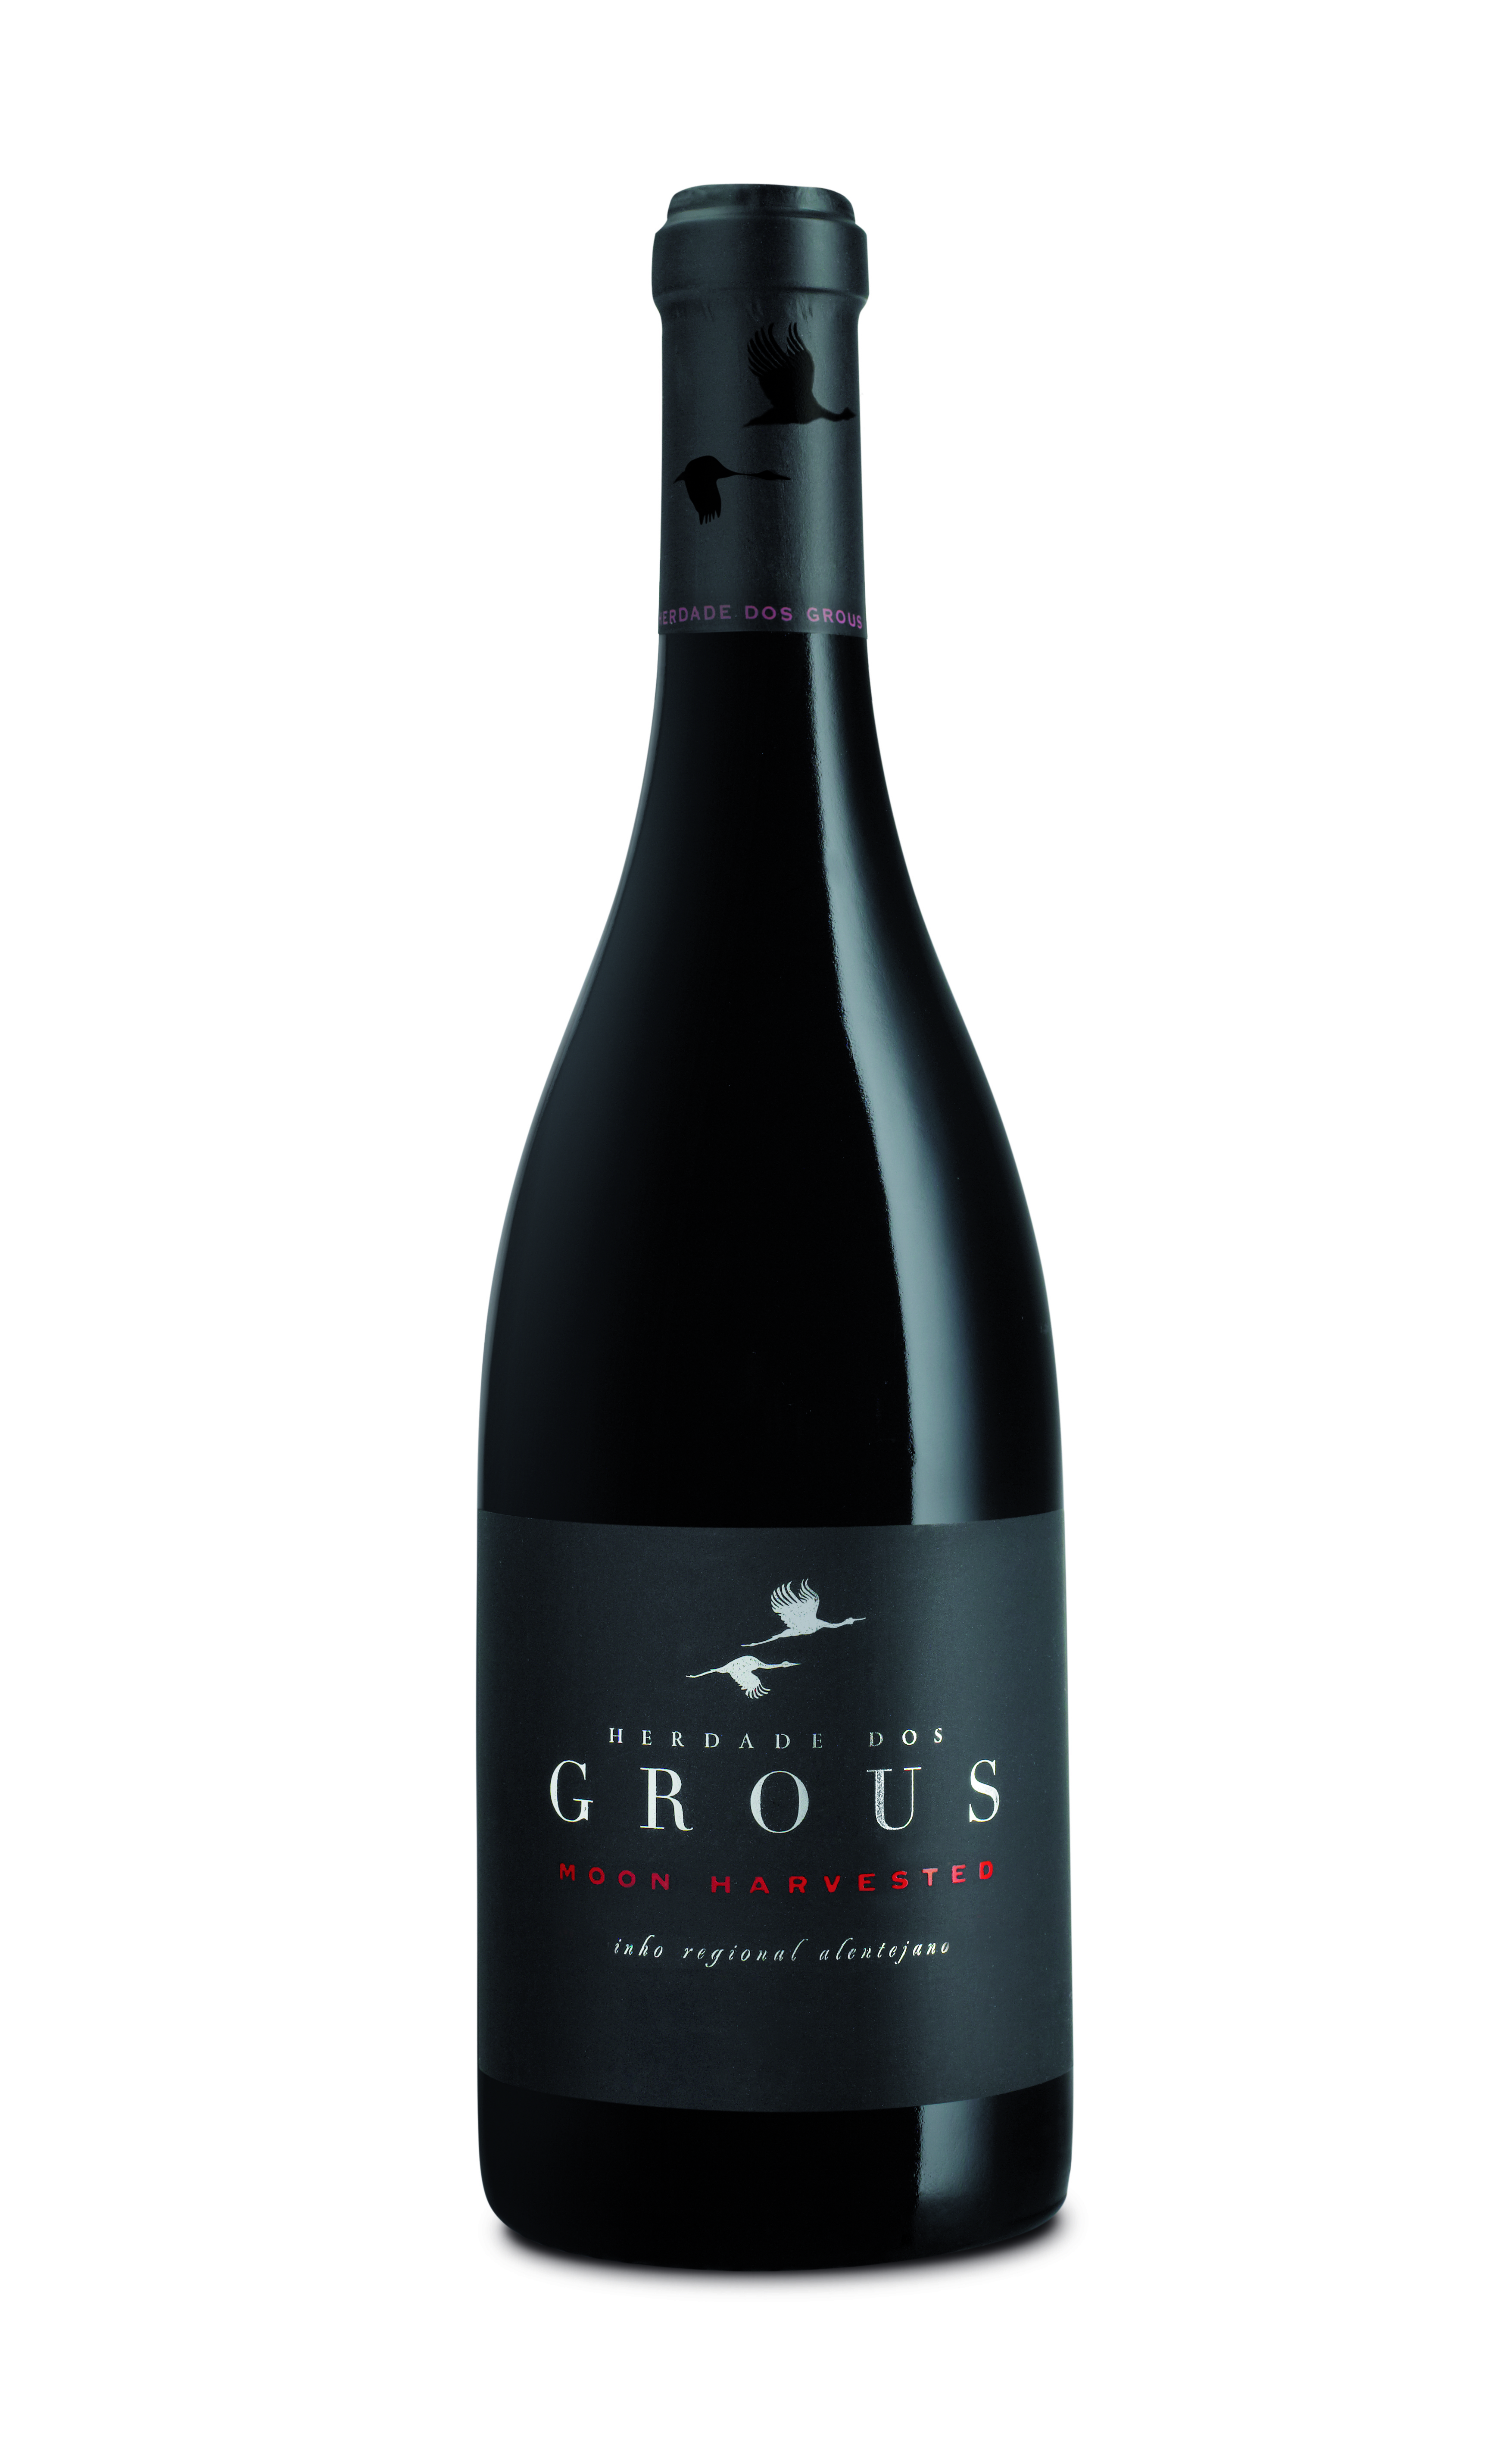 Herdade dos Grous Moon Harvested